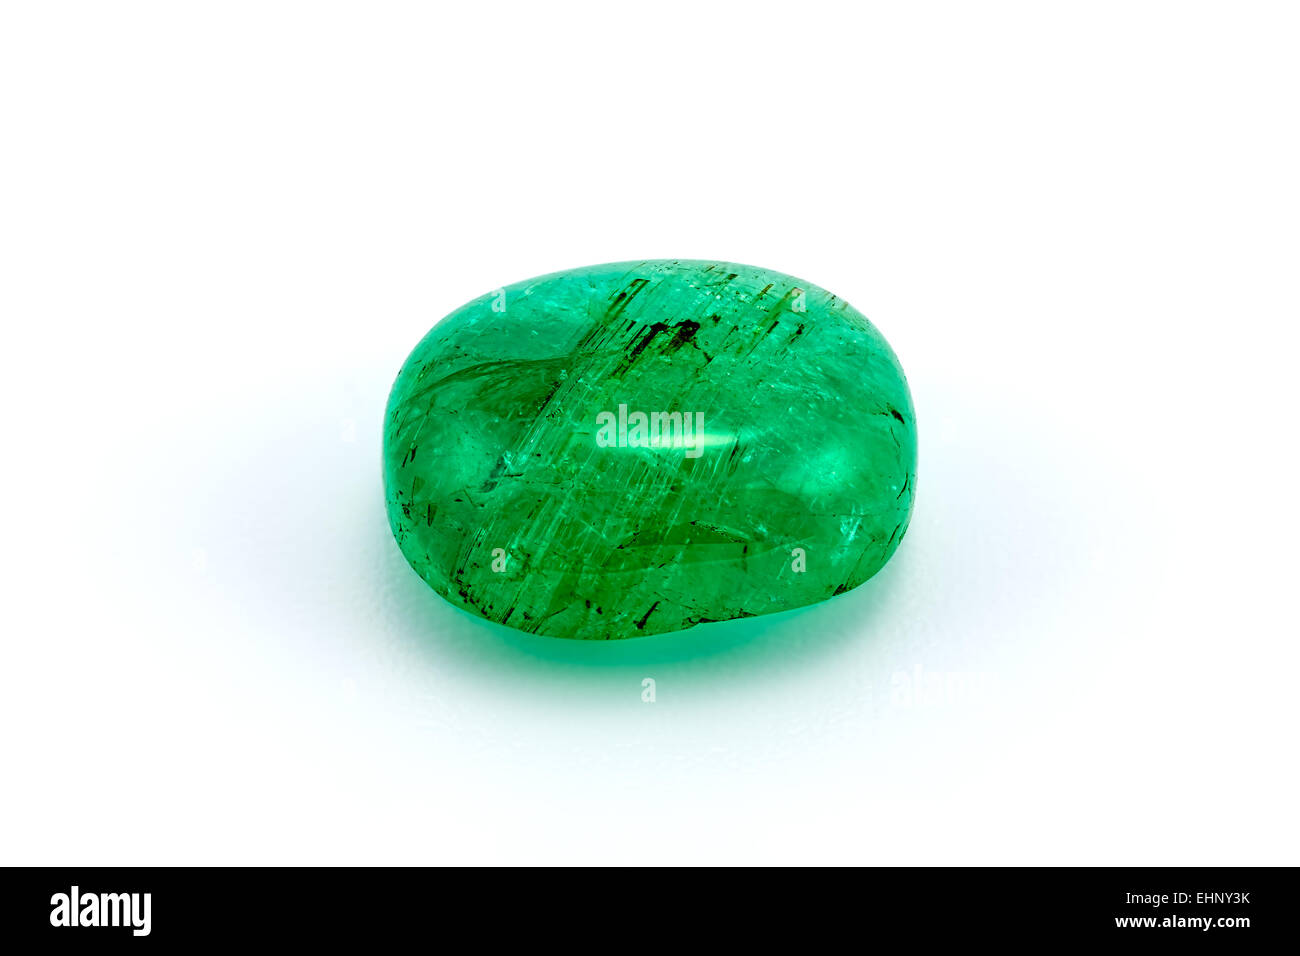 crystal emerald stock gem alamy beryl cabochon images weight photos photo composition structure hexagonal aluminium unknown beryllium